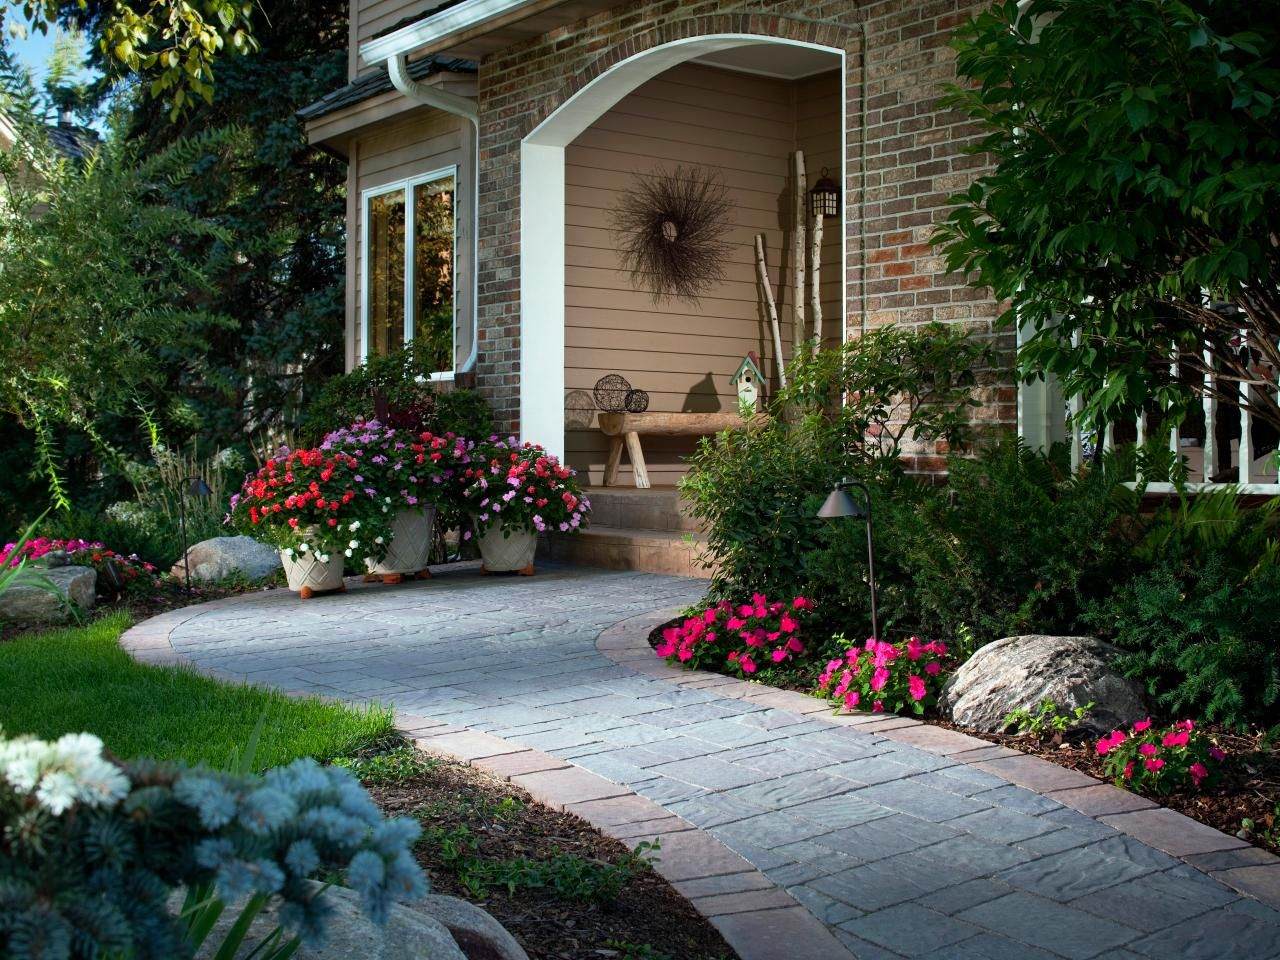 Front yard driveway landscaping ideas  Outfit Your Homeus Exterior  Exterior trim Save energy and